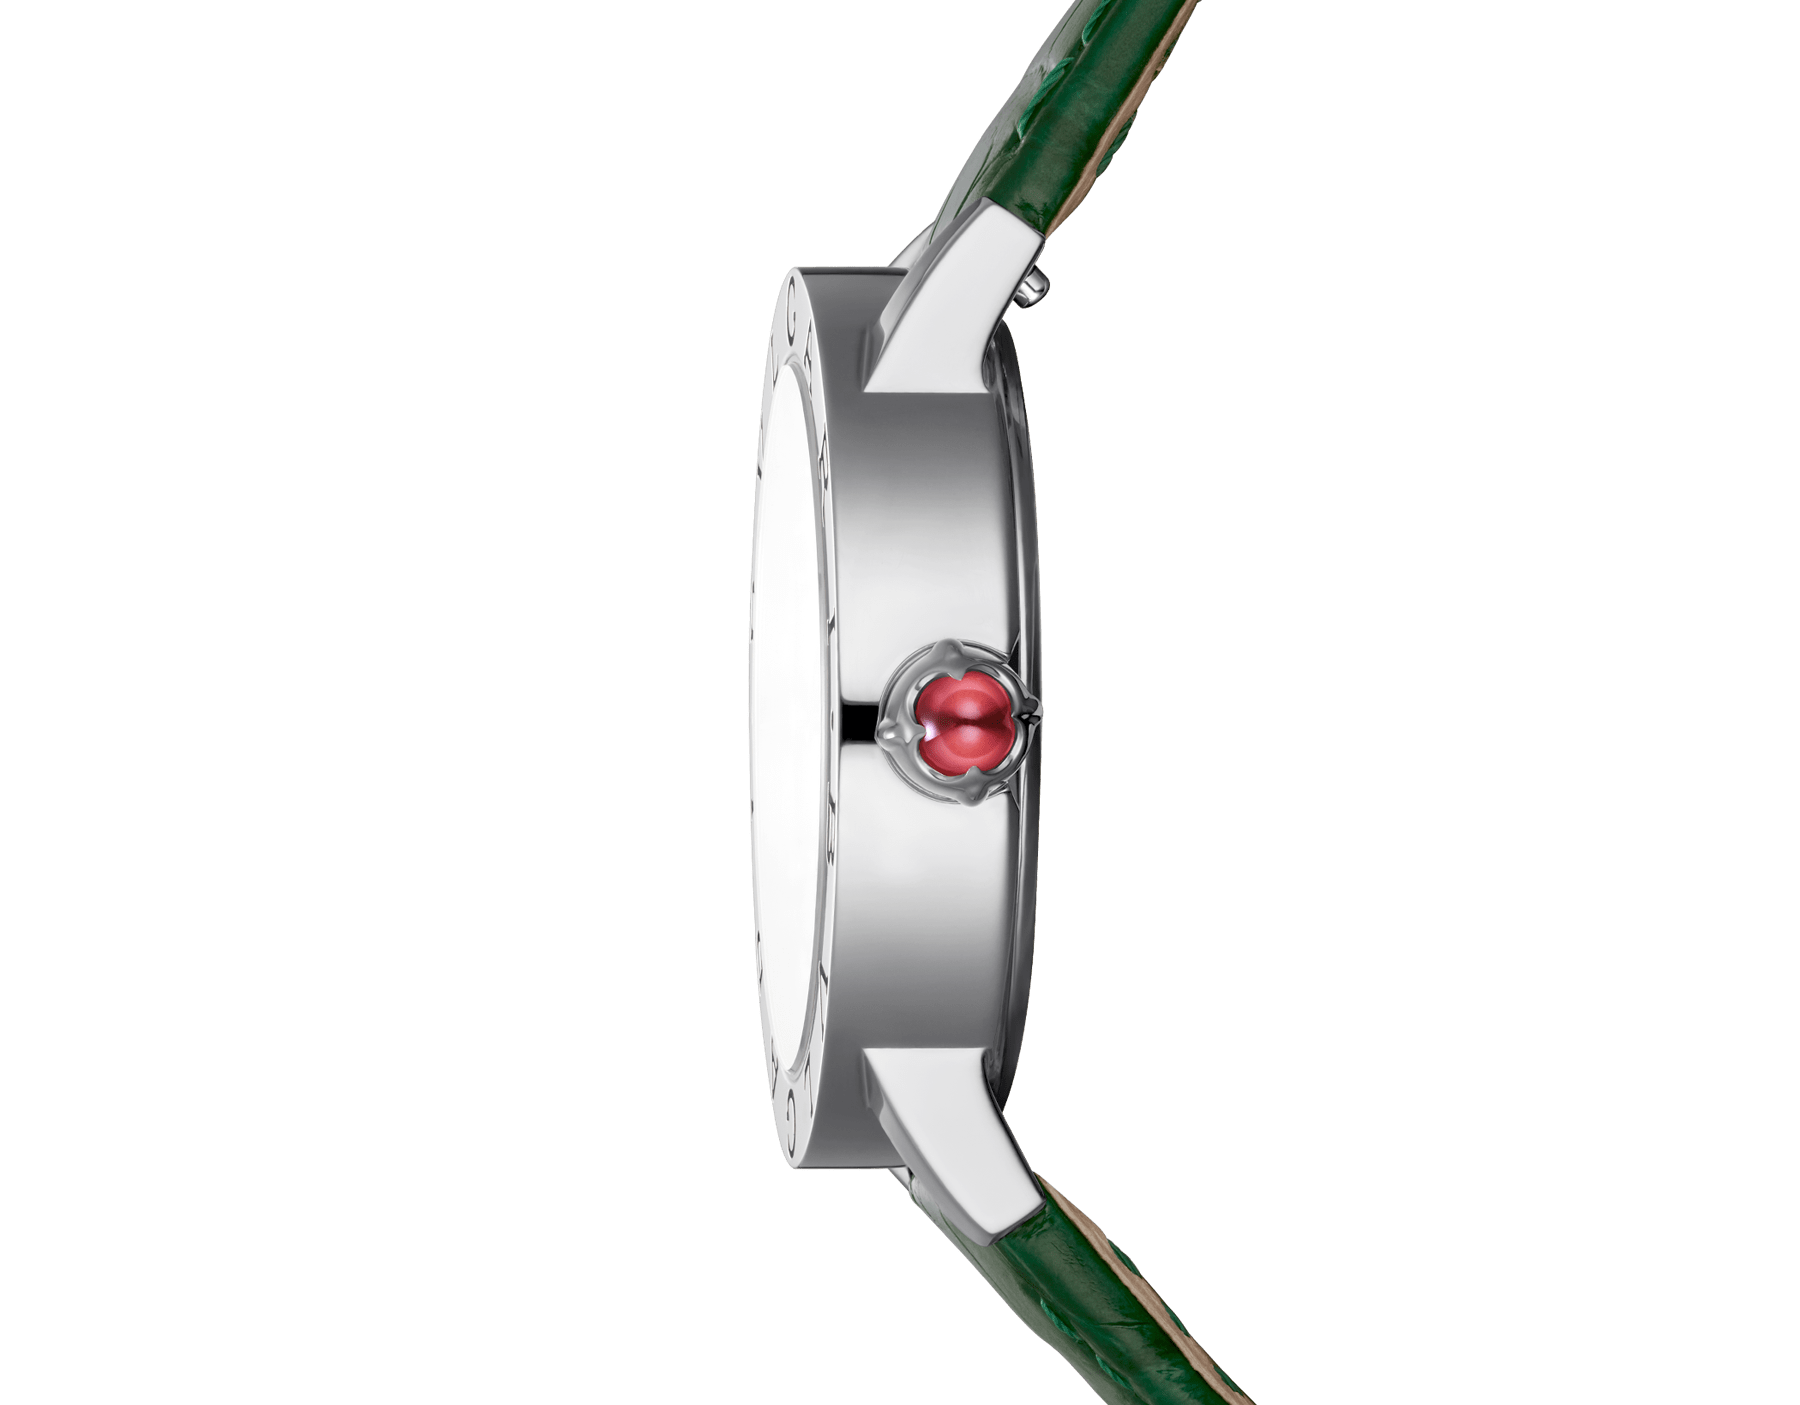 BVLGARI BVLGARI watch with stainless steel case, white mother-of-pearl dial, diamond indexes and shiny green alligator bracelet 102746 image 3